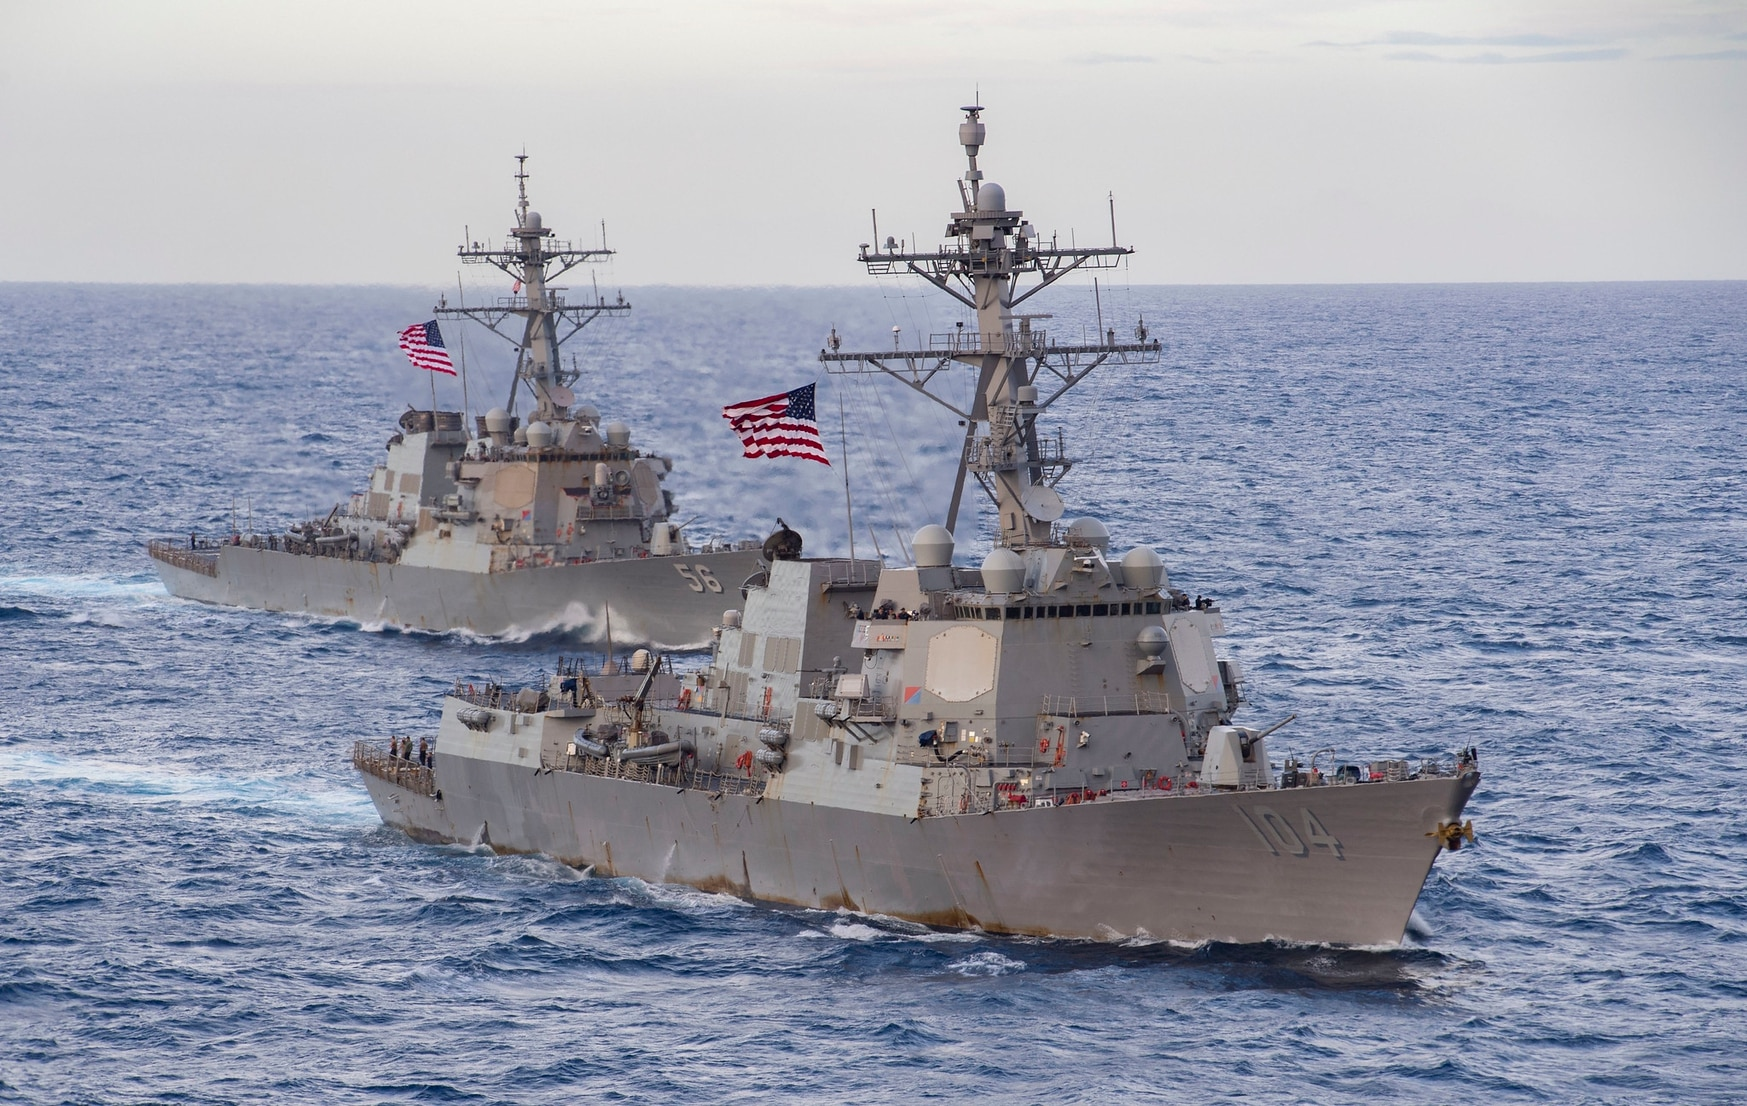 The U.S. Navy's guided-missile destroyers Sterett and John S. McCain transit the South China Sea. (MC3 Cheyenne Geletka/U.S. Navy)